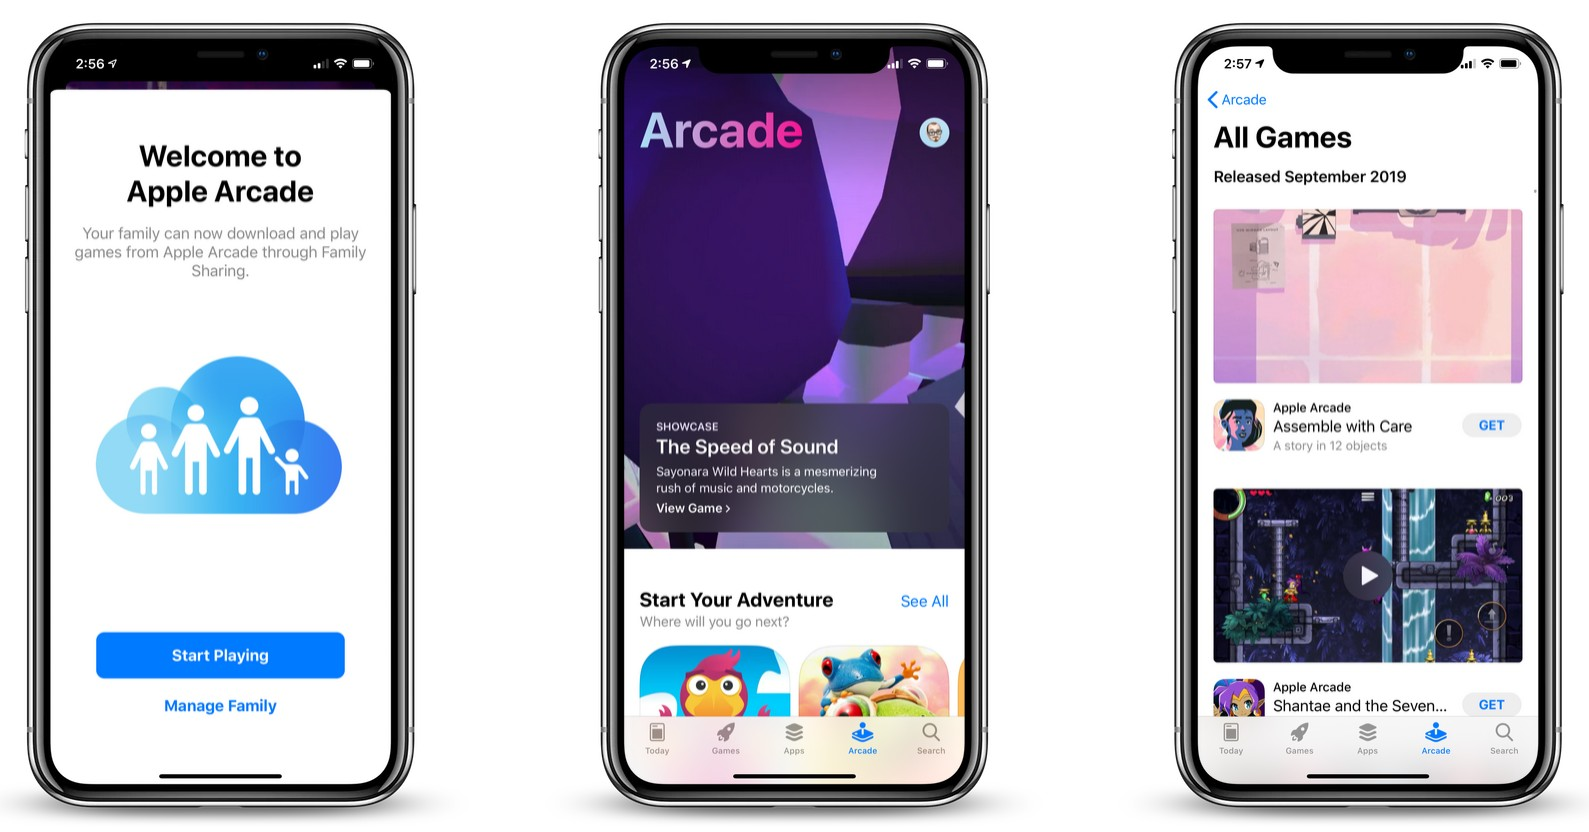 Apple Arcade Already Available For Some iOS Users